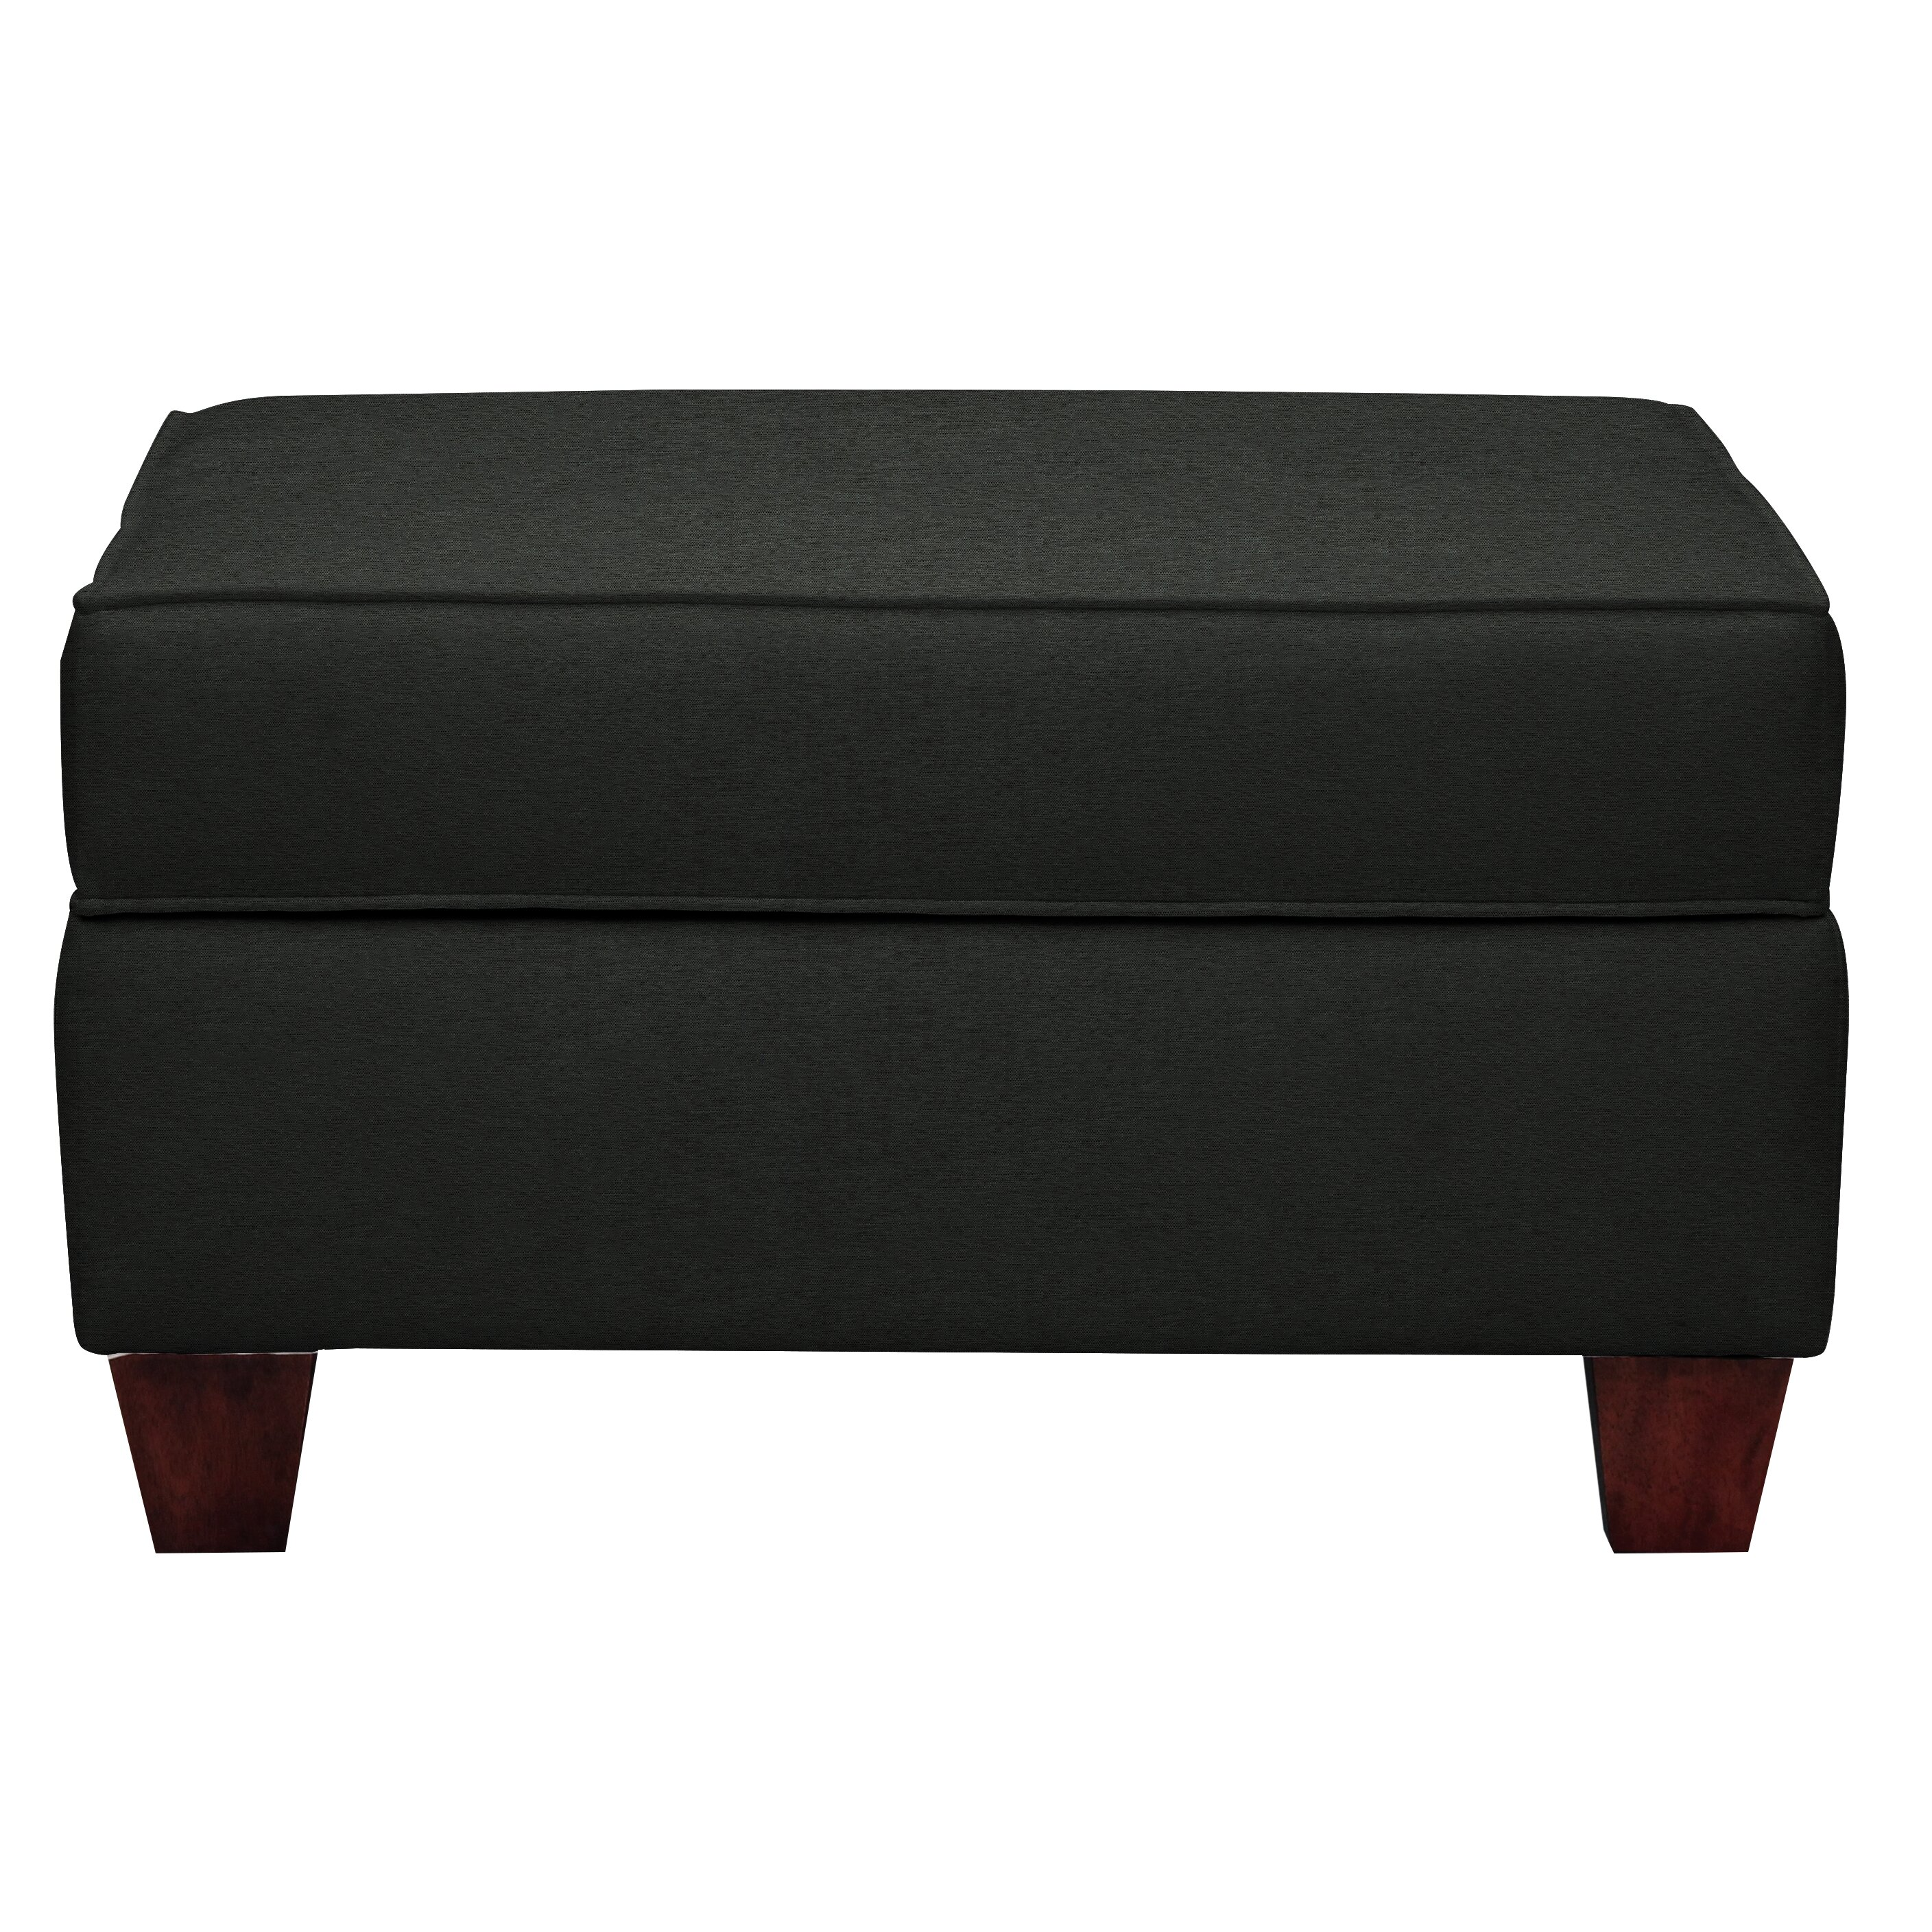 Simplicity Sofas Large Storage Ottoman Wayfair